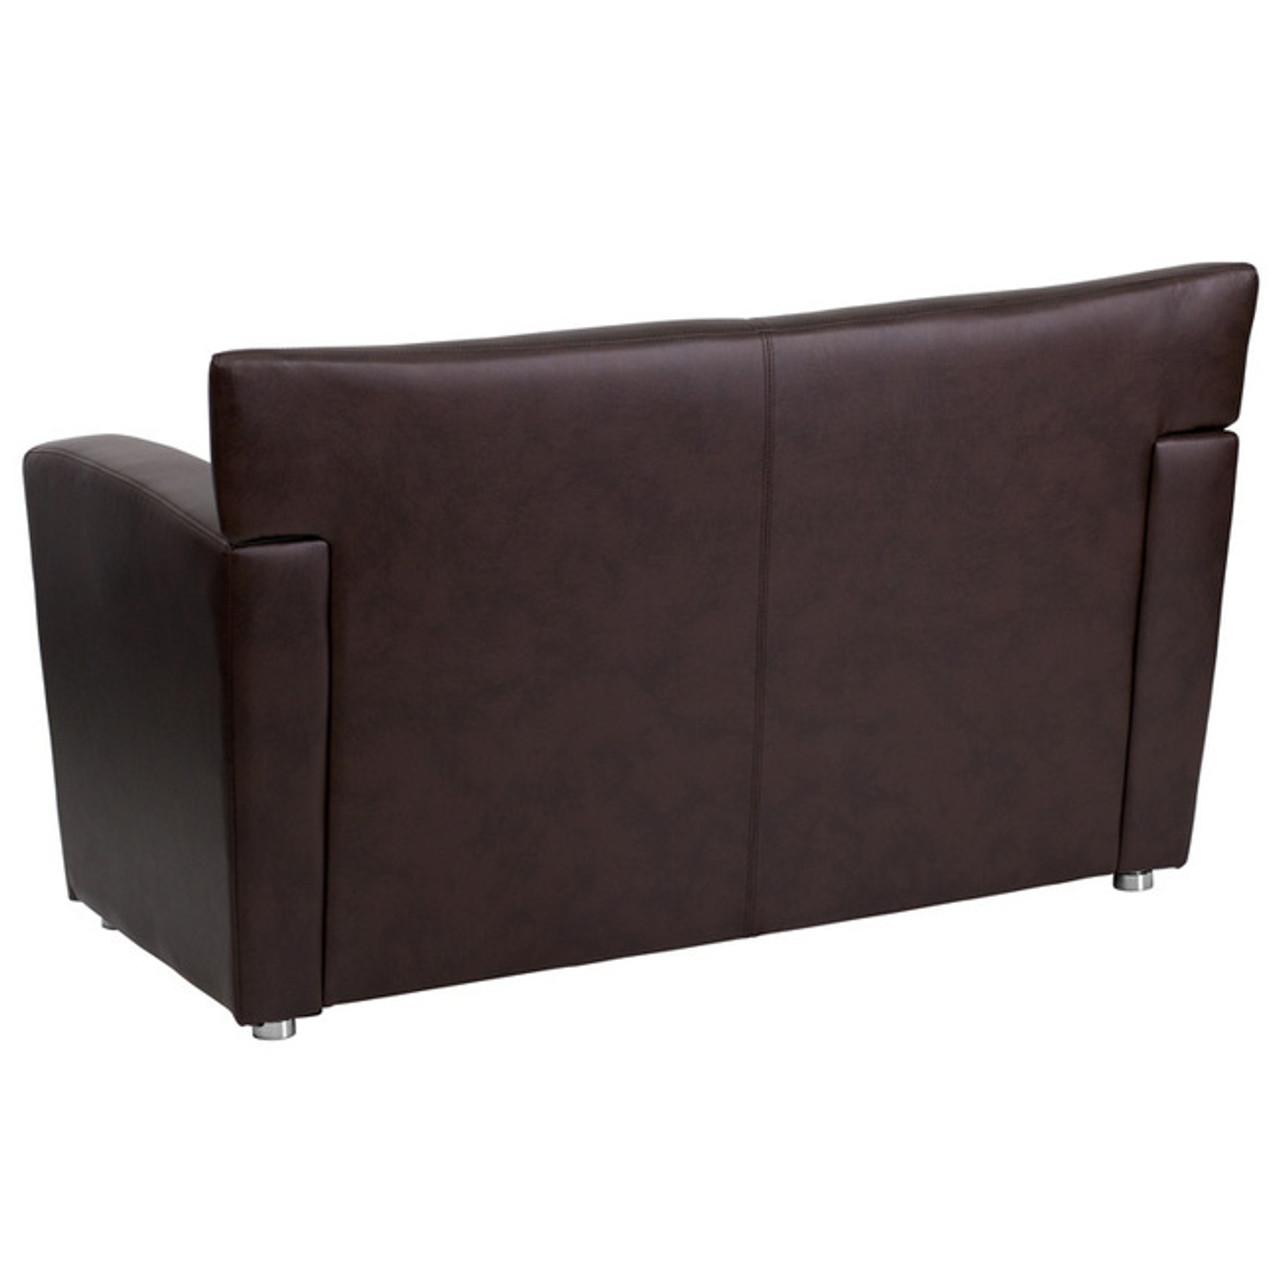 1pc Modern Leather Office Reception Loveseat, FF-0546-13